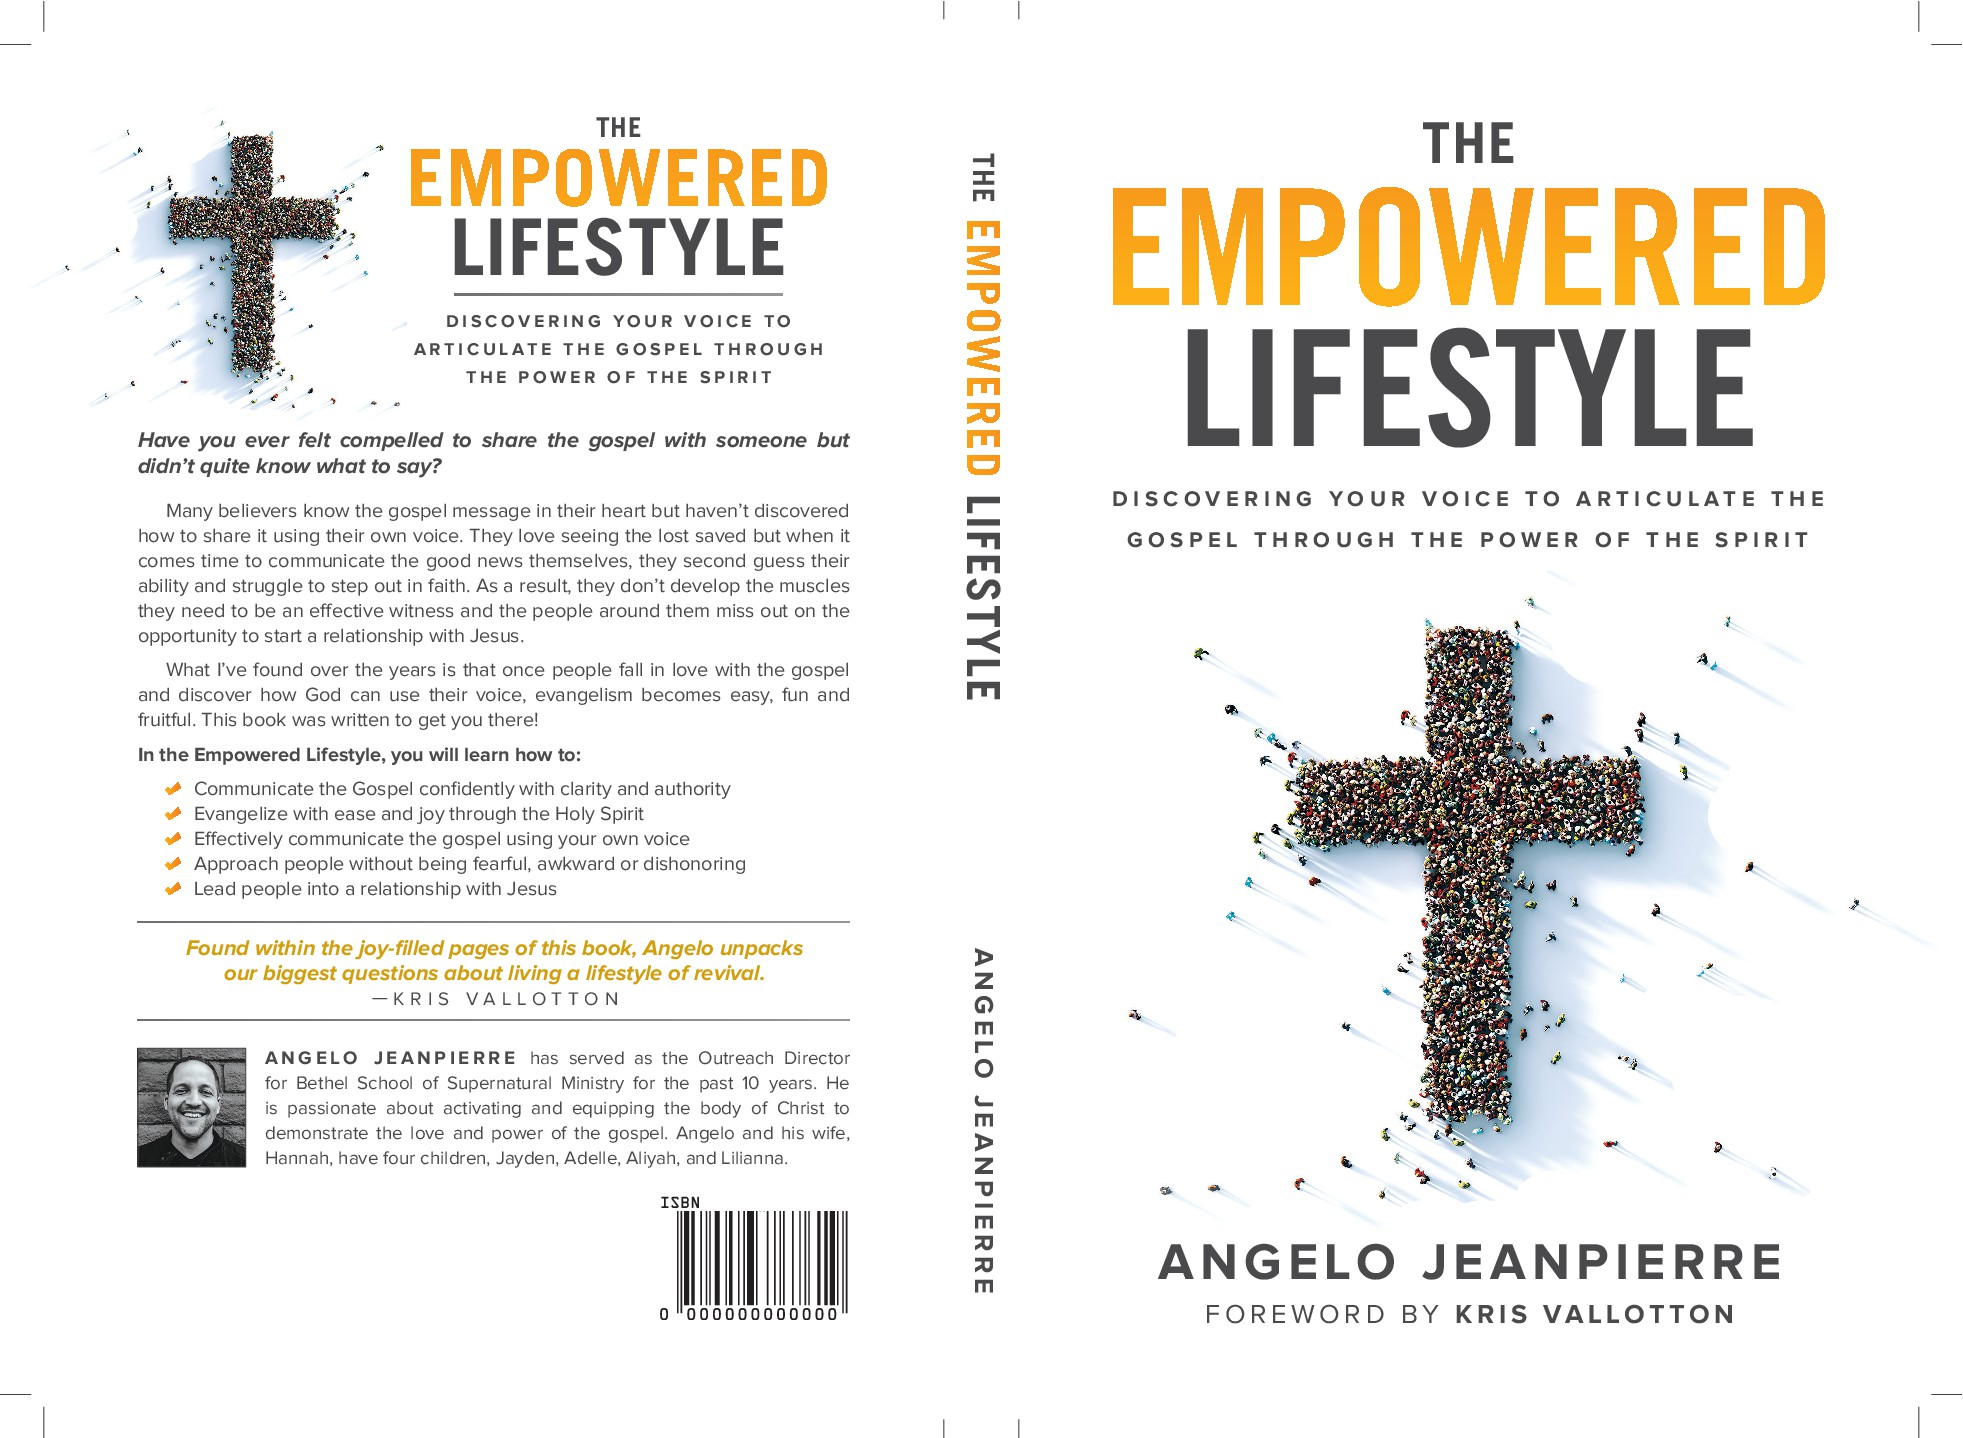 Book cover design thats clean but still stirs passion to impact the people around you w/the Love of God